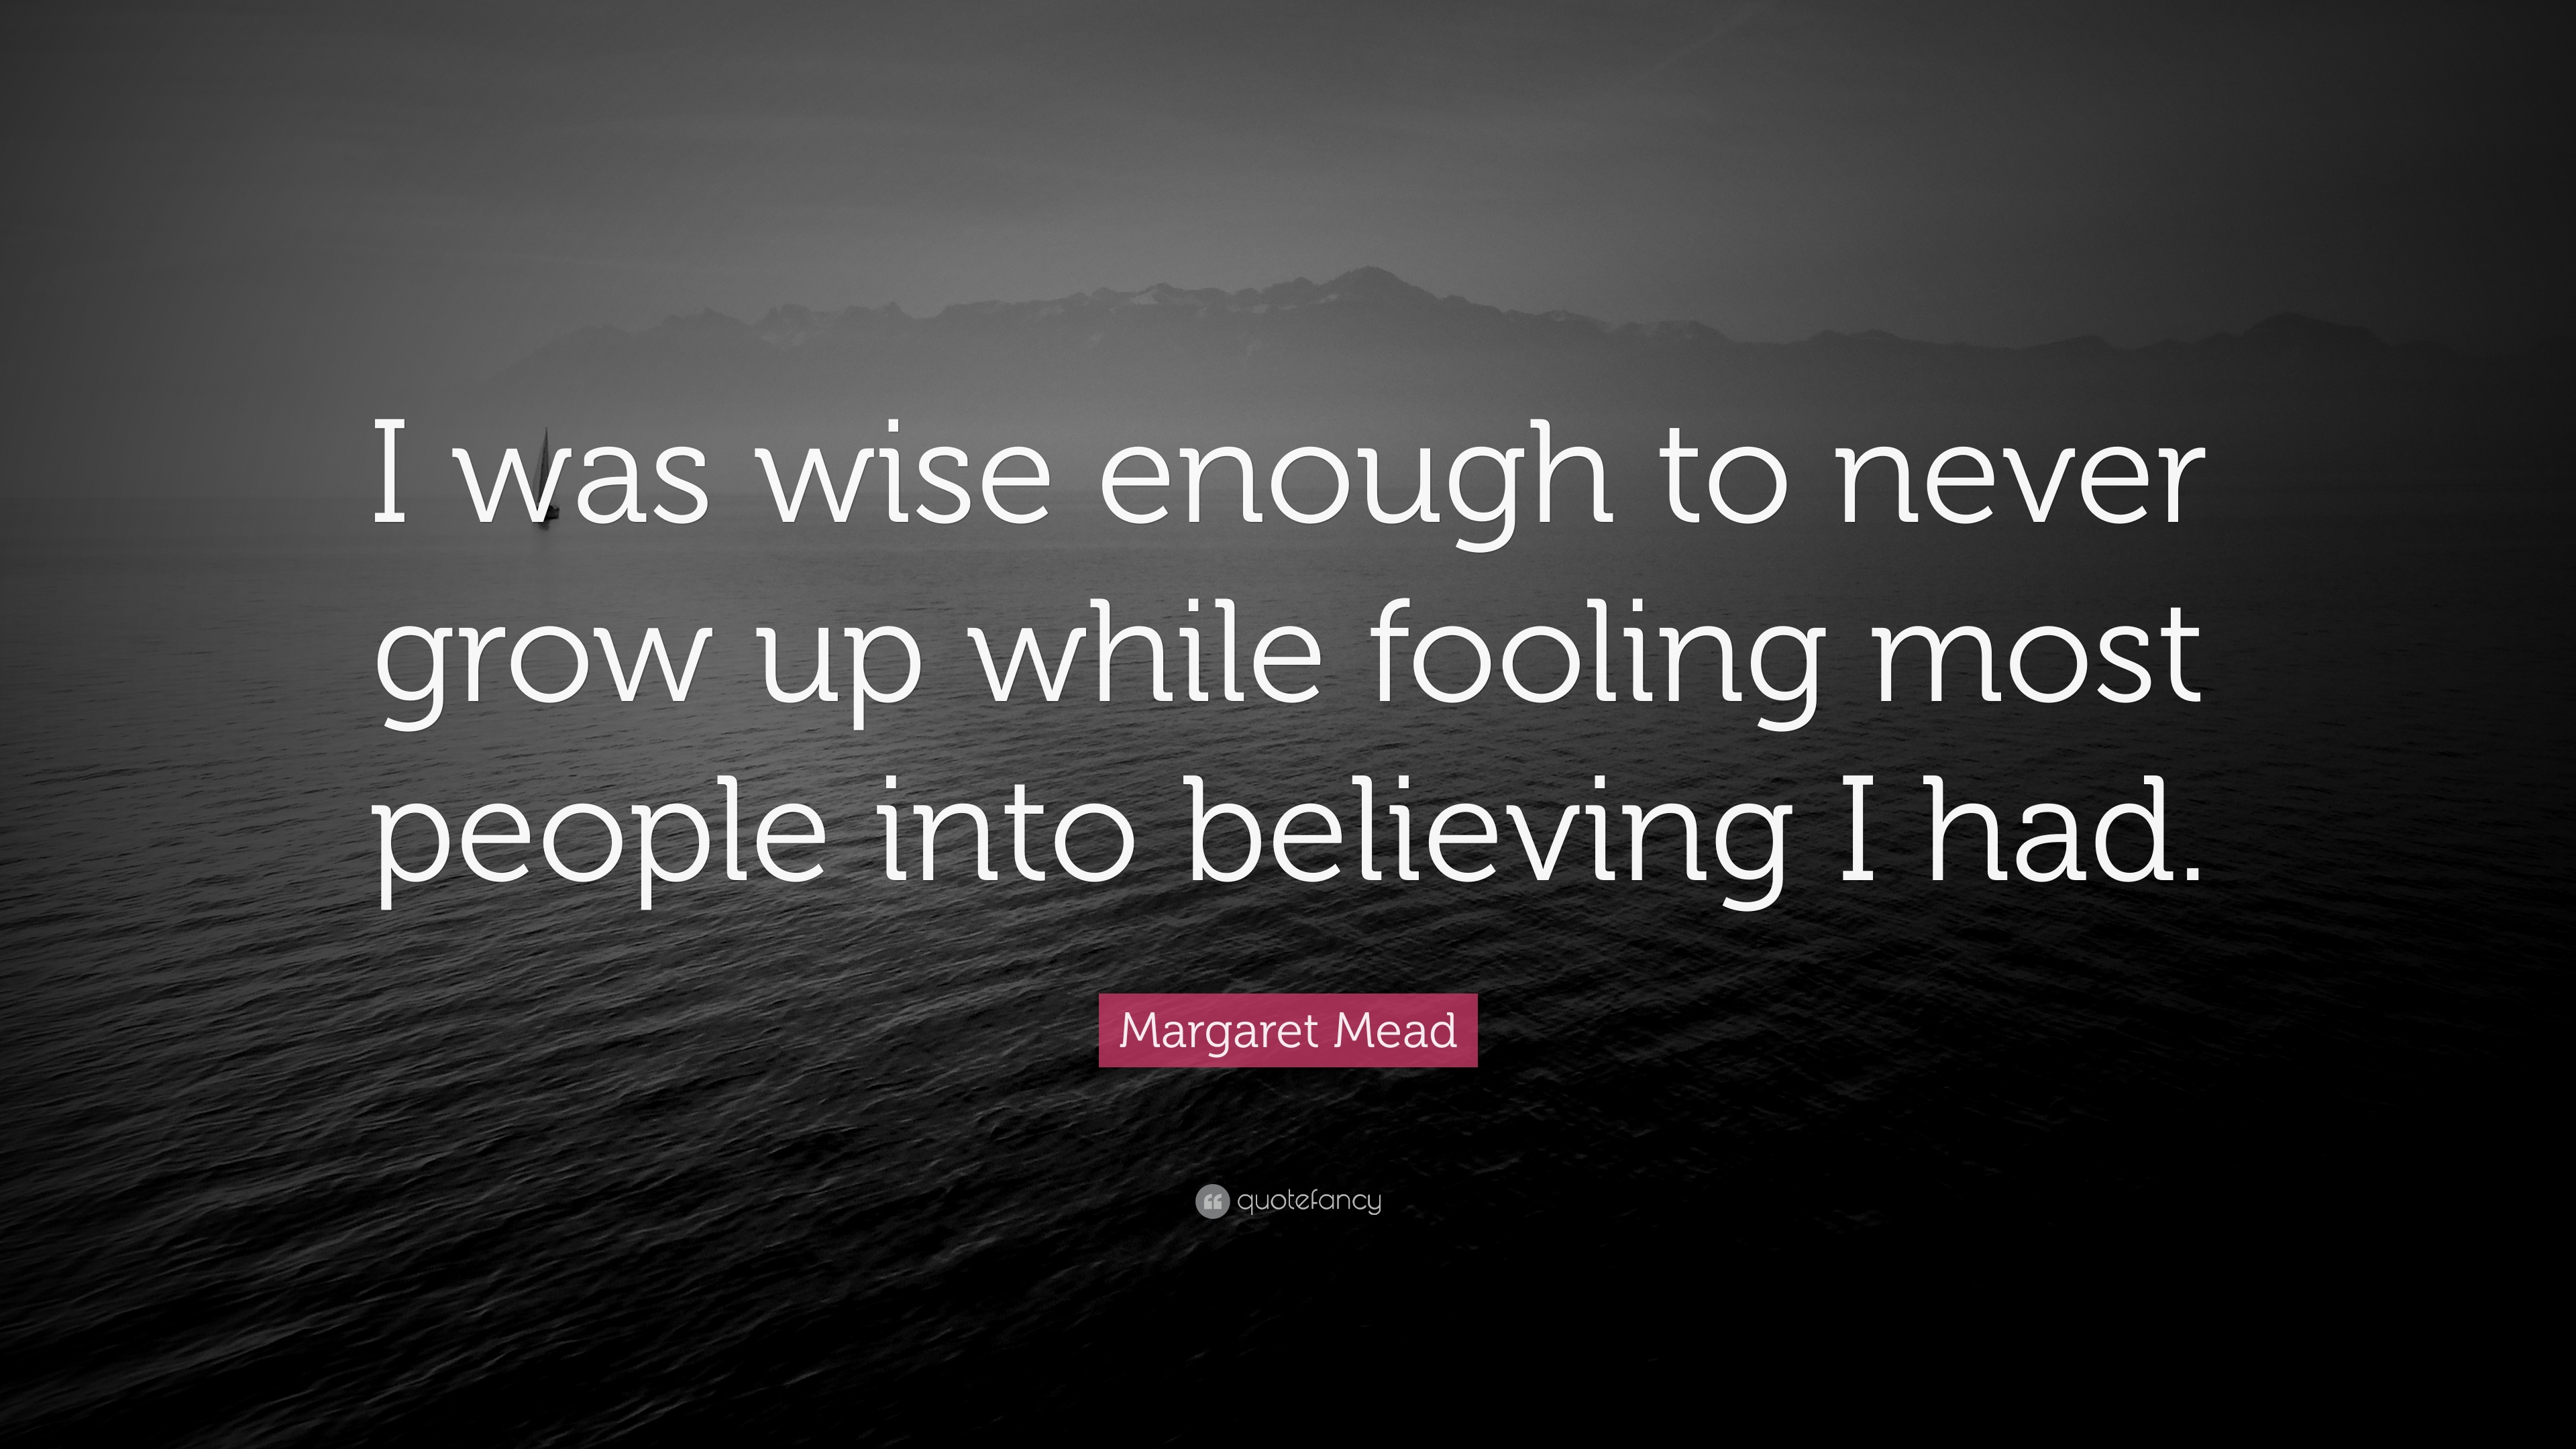 Margaret Mead Quote I Was Wise Enough To Never Grow Up While Fooling Most